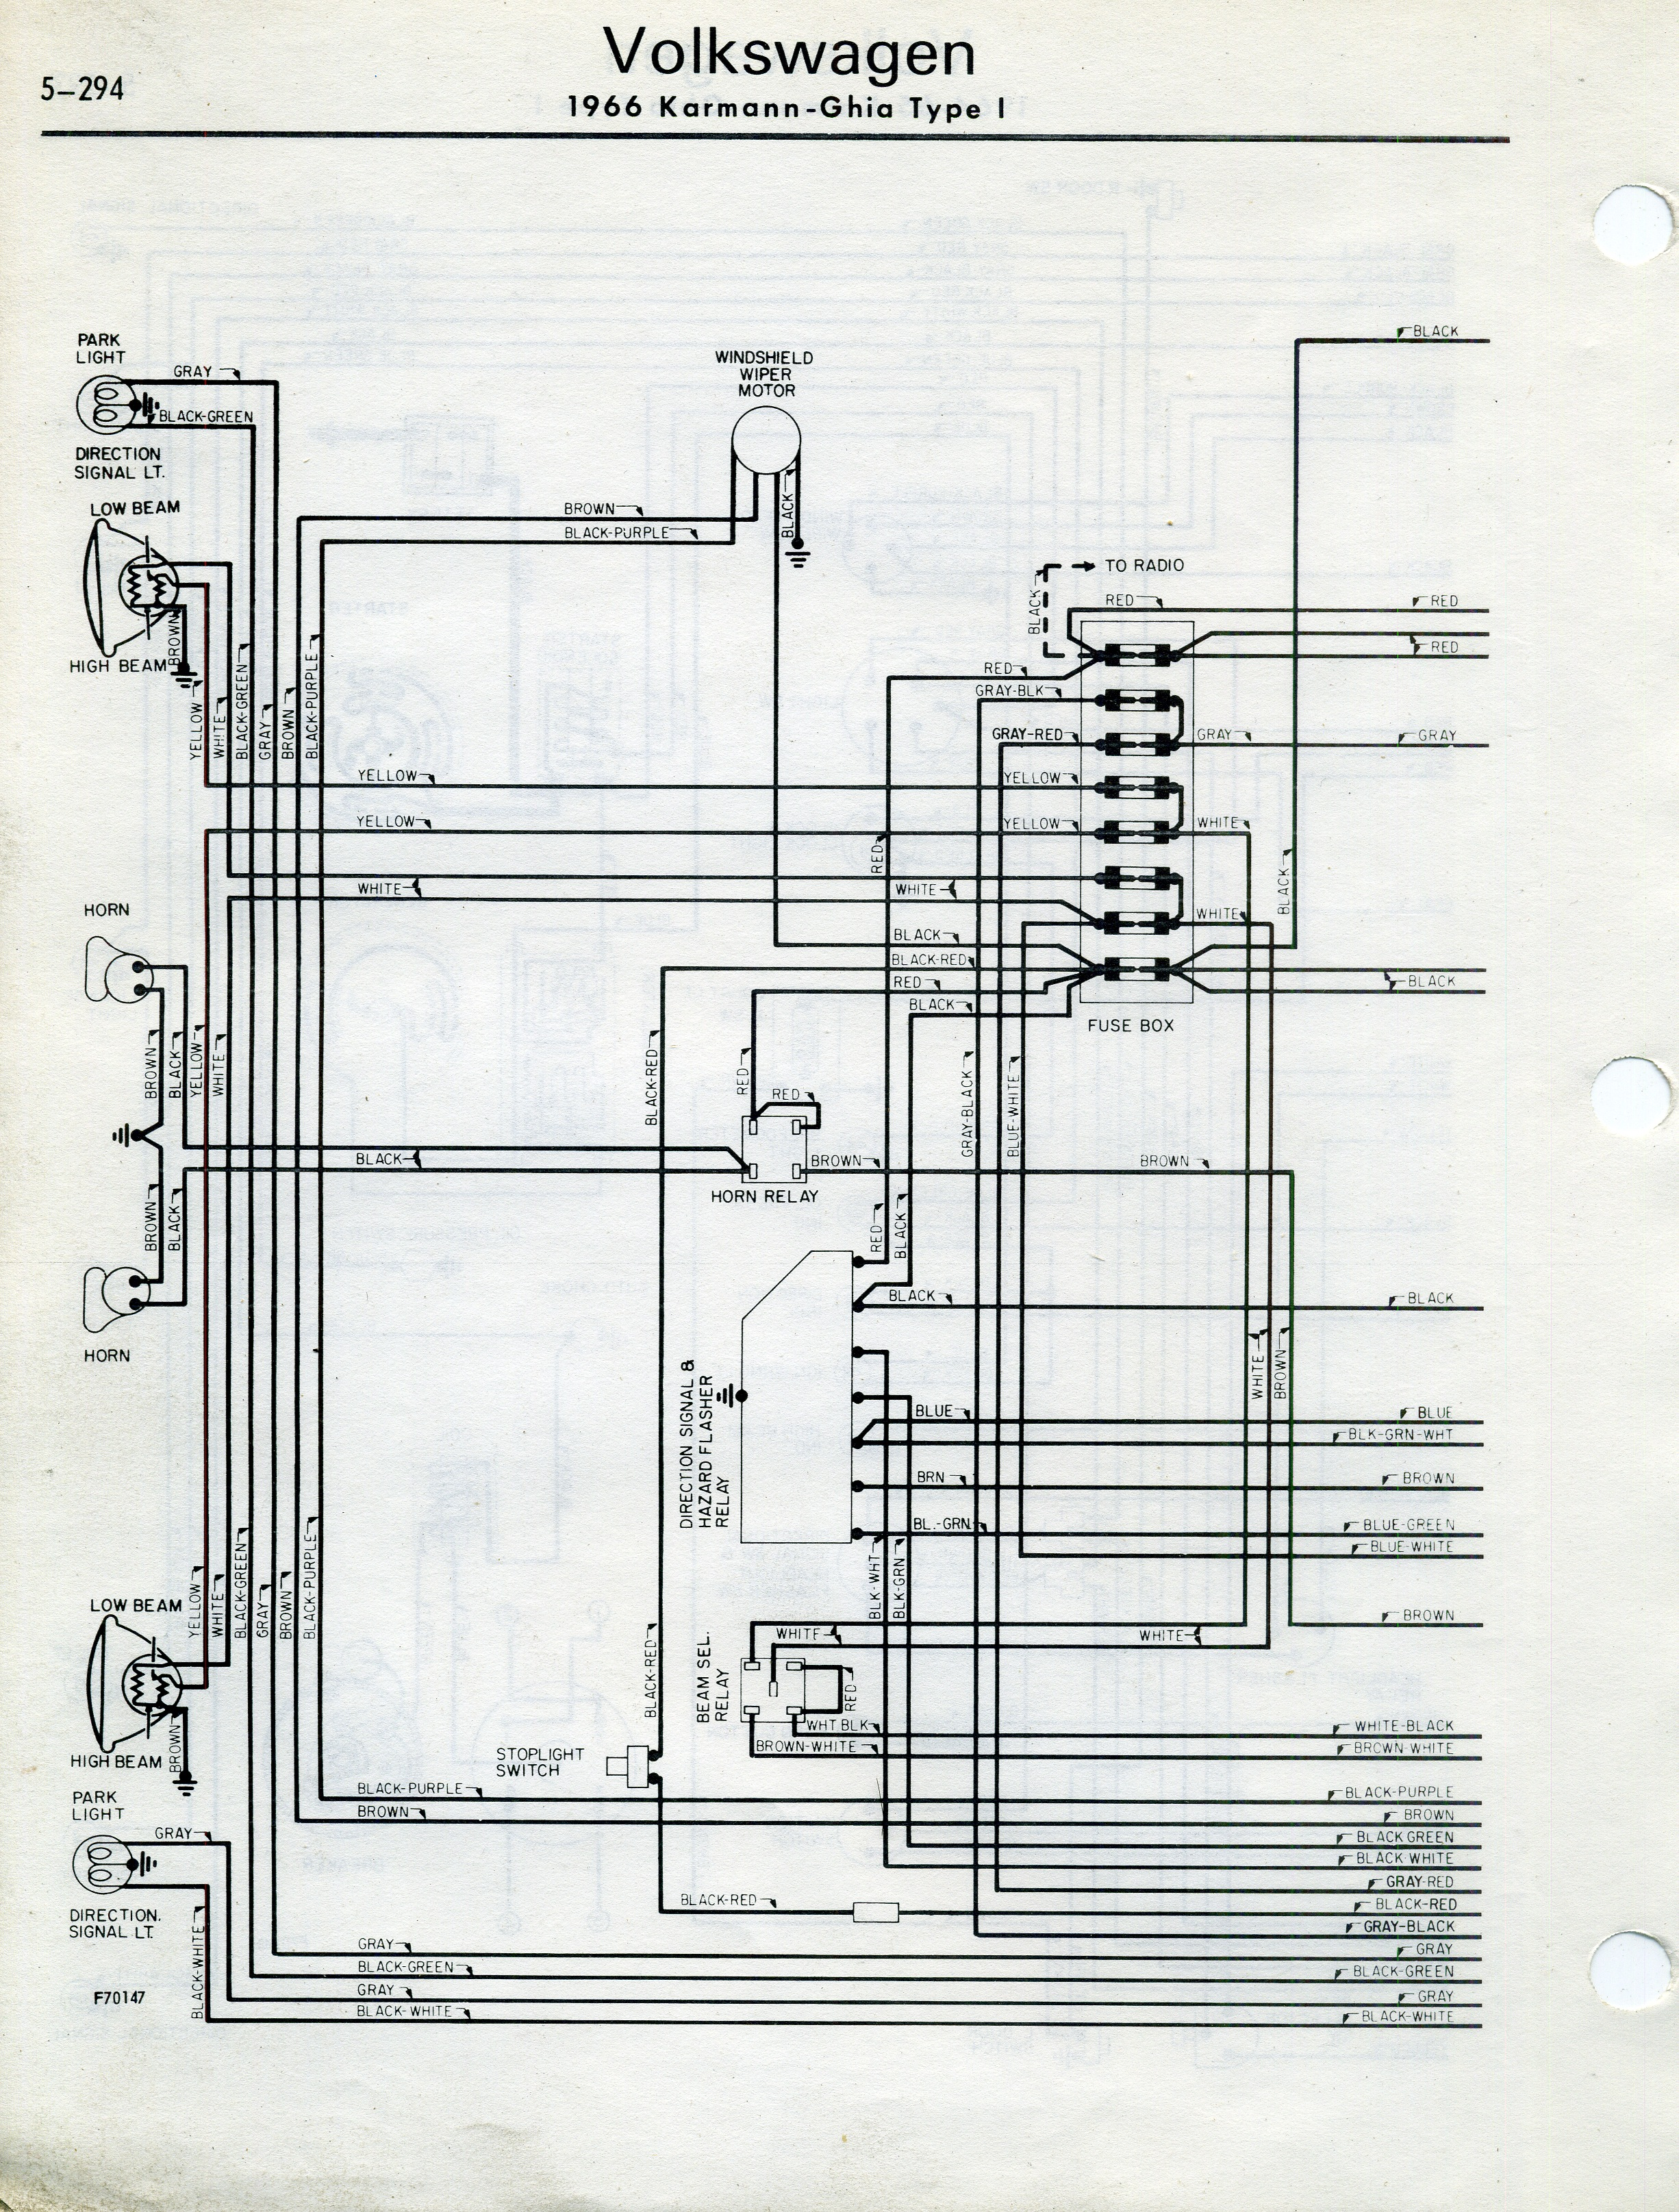 thesamba.com :: karmann ghia wiring diagrams 1967 vw karmann ghia wiring diagram #13